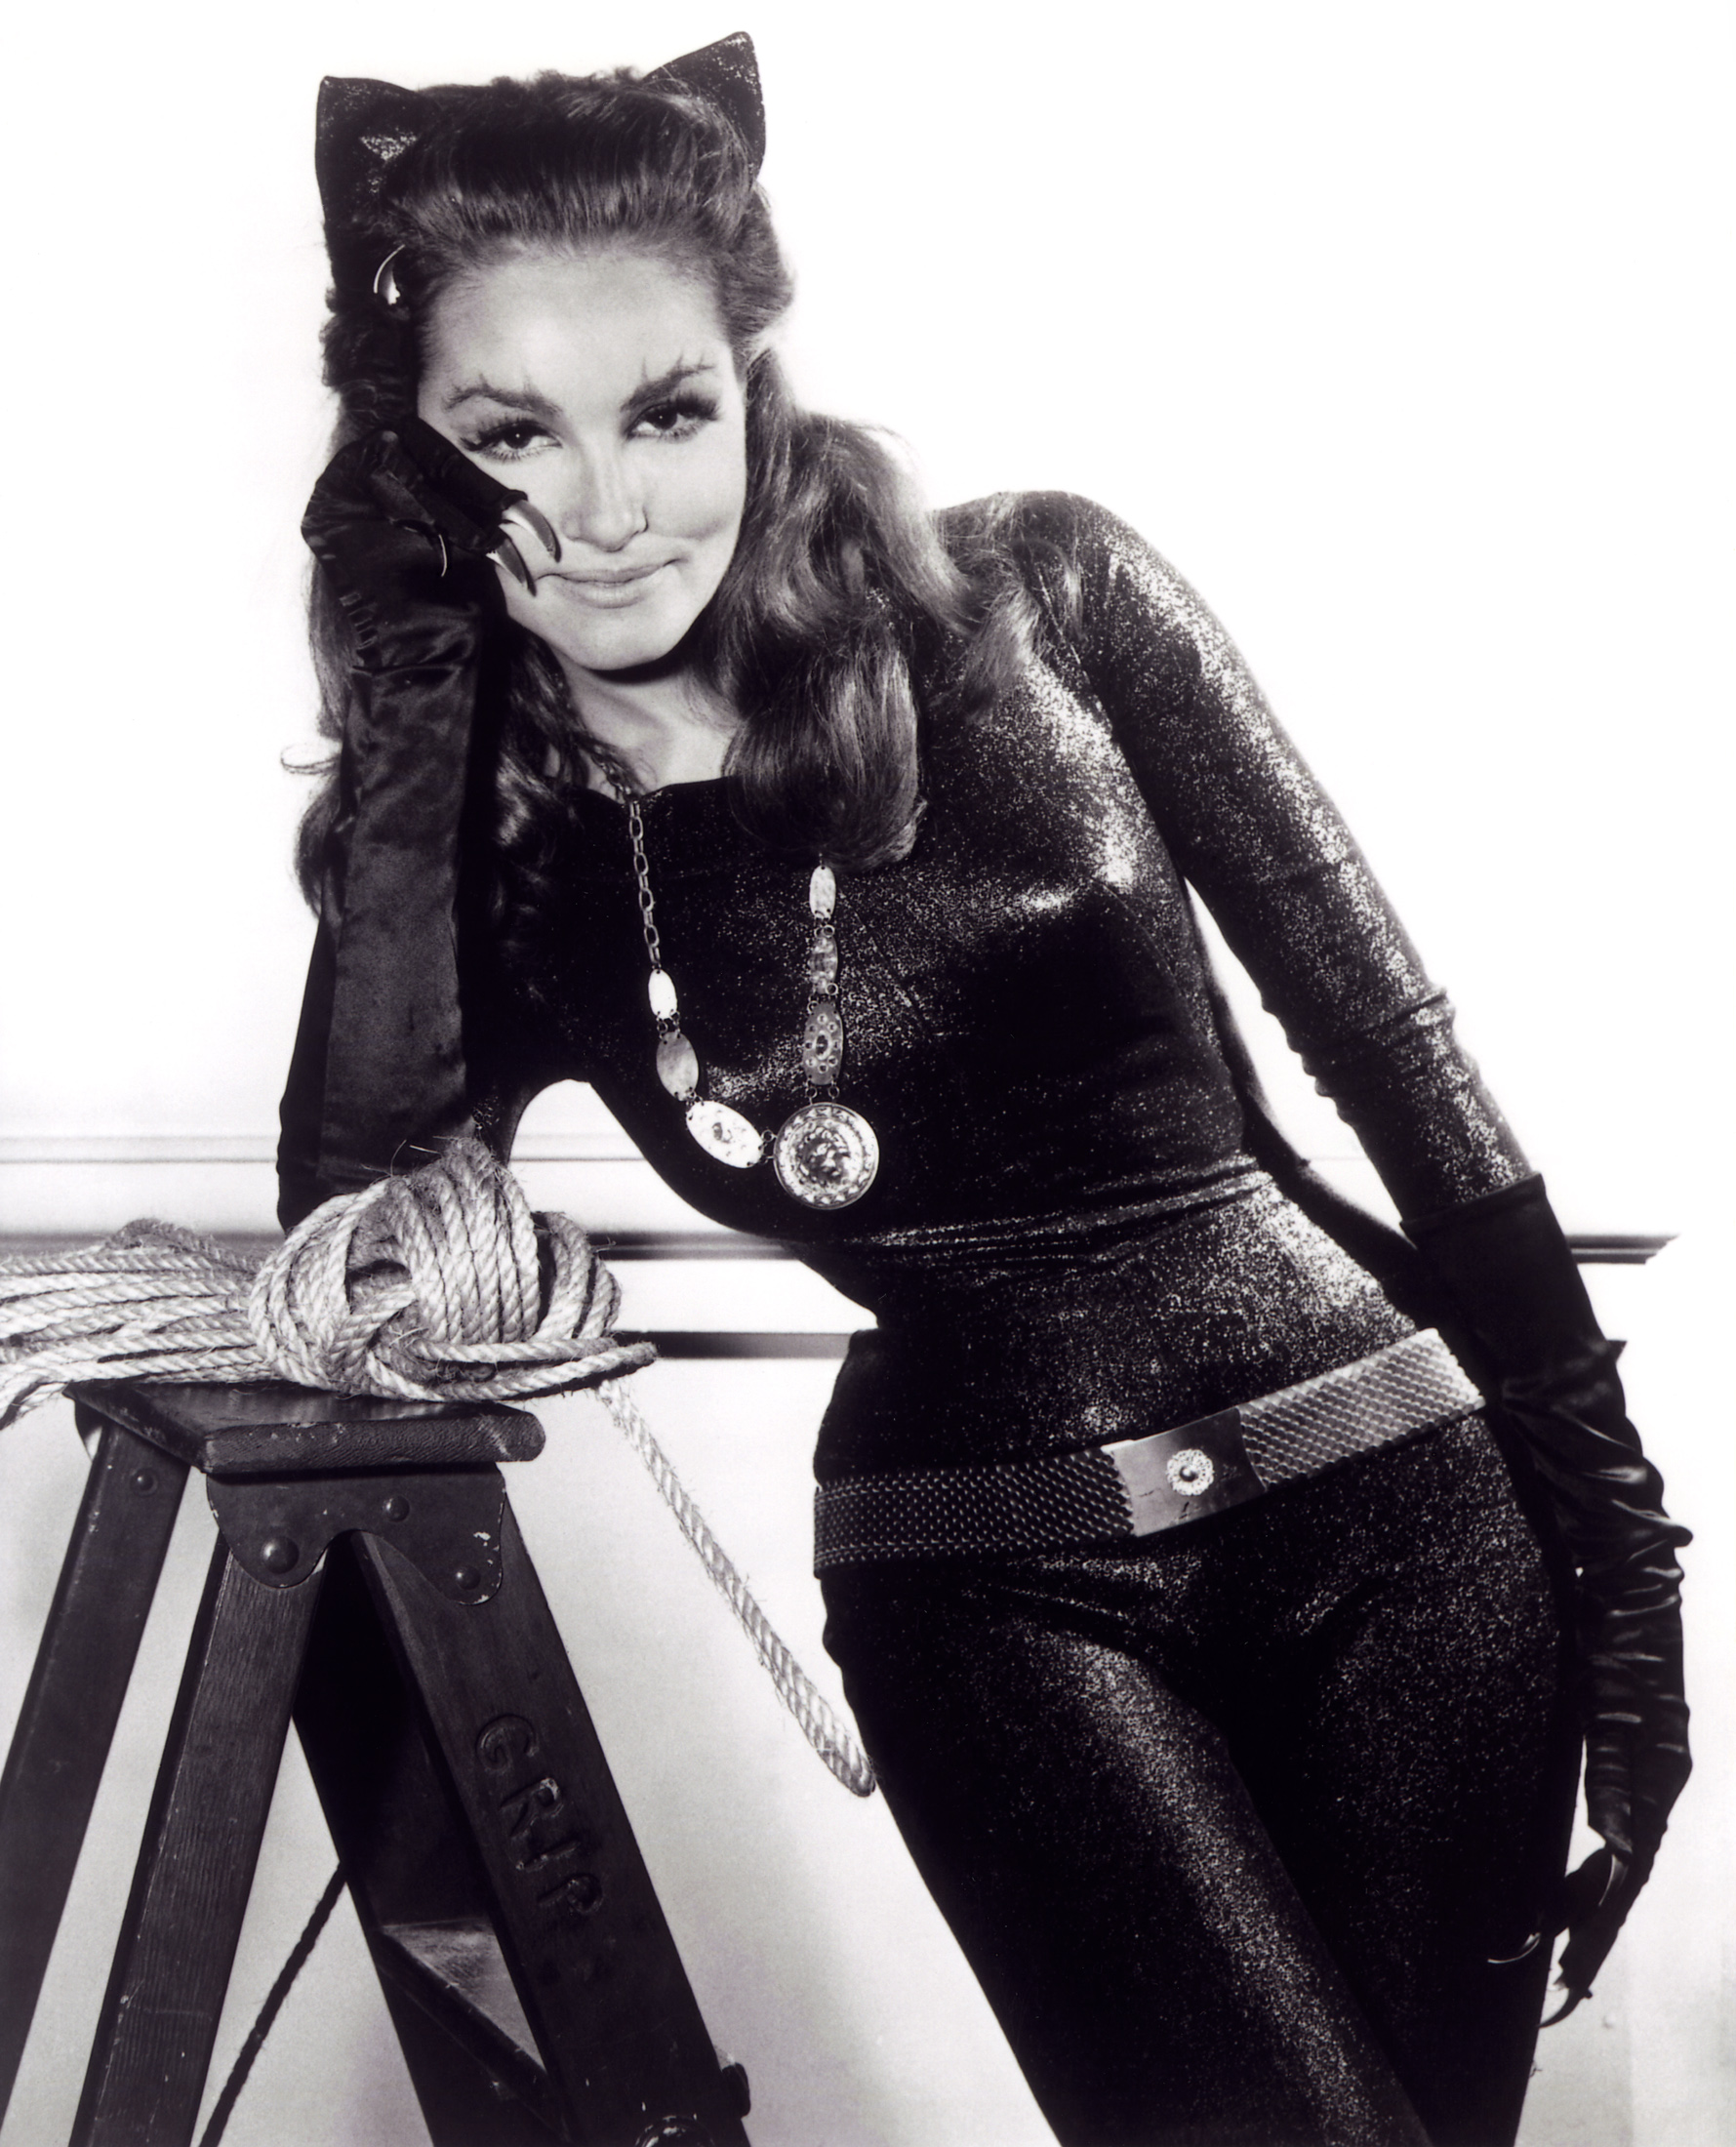 julie newmar too funkyjulie newmar height, julie newmar too funky, julie newmar 2016, julie newmar batman, julie newmar wiki, julie newmar catwoman, julie newmar 2015, julie newmar to wong foo, julie newmar stupefyin jones, julie newmar imdb, julie newmar camren bicondova, julie newmar instagram, julie newmar, julie newmar 2014, julie newmar now, julie newmar twilight zone, julie newmar thanks for everything, julie newmar son, julie newmar measurements, julie newmar net worth